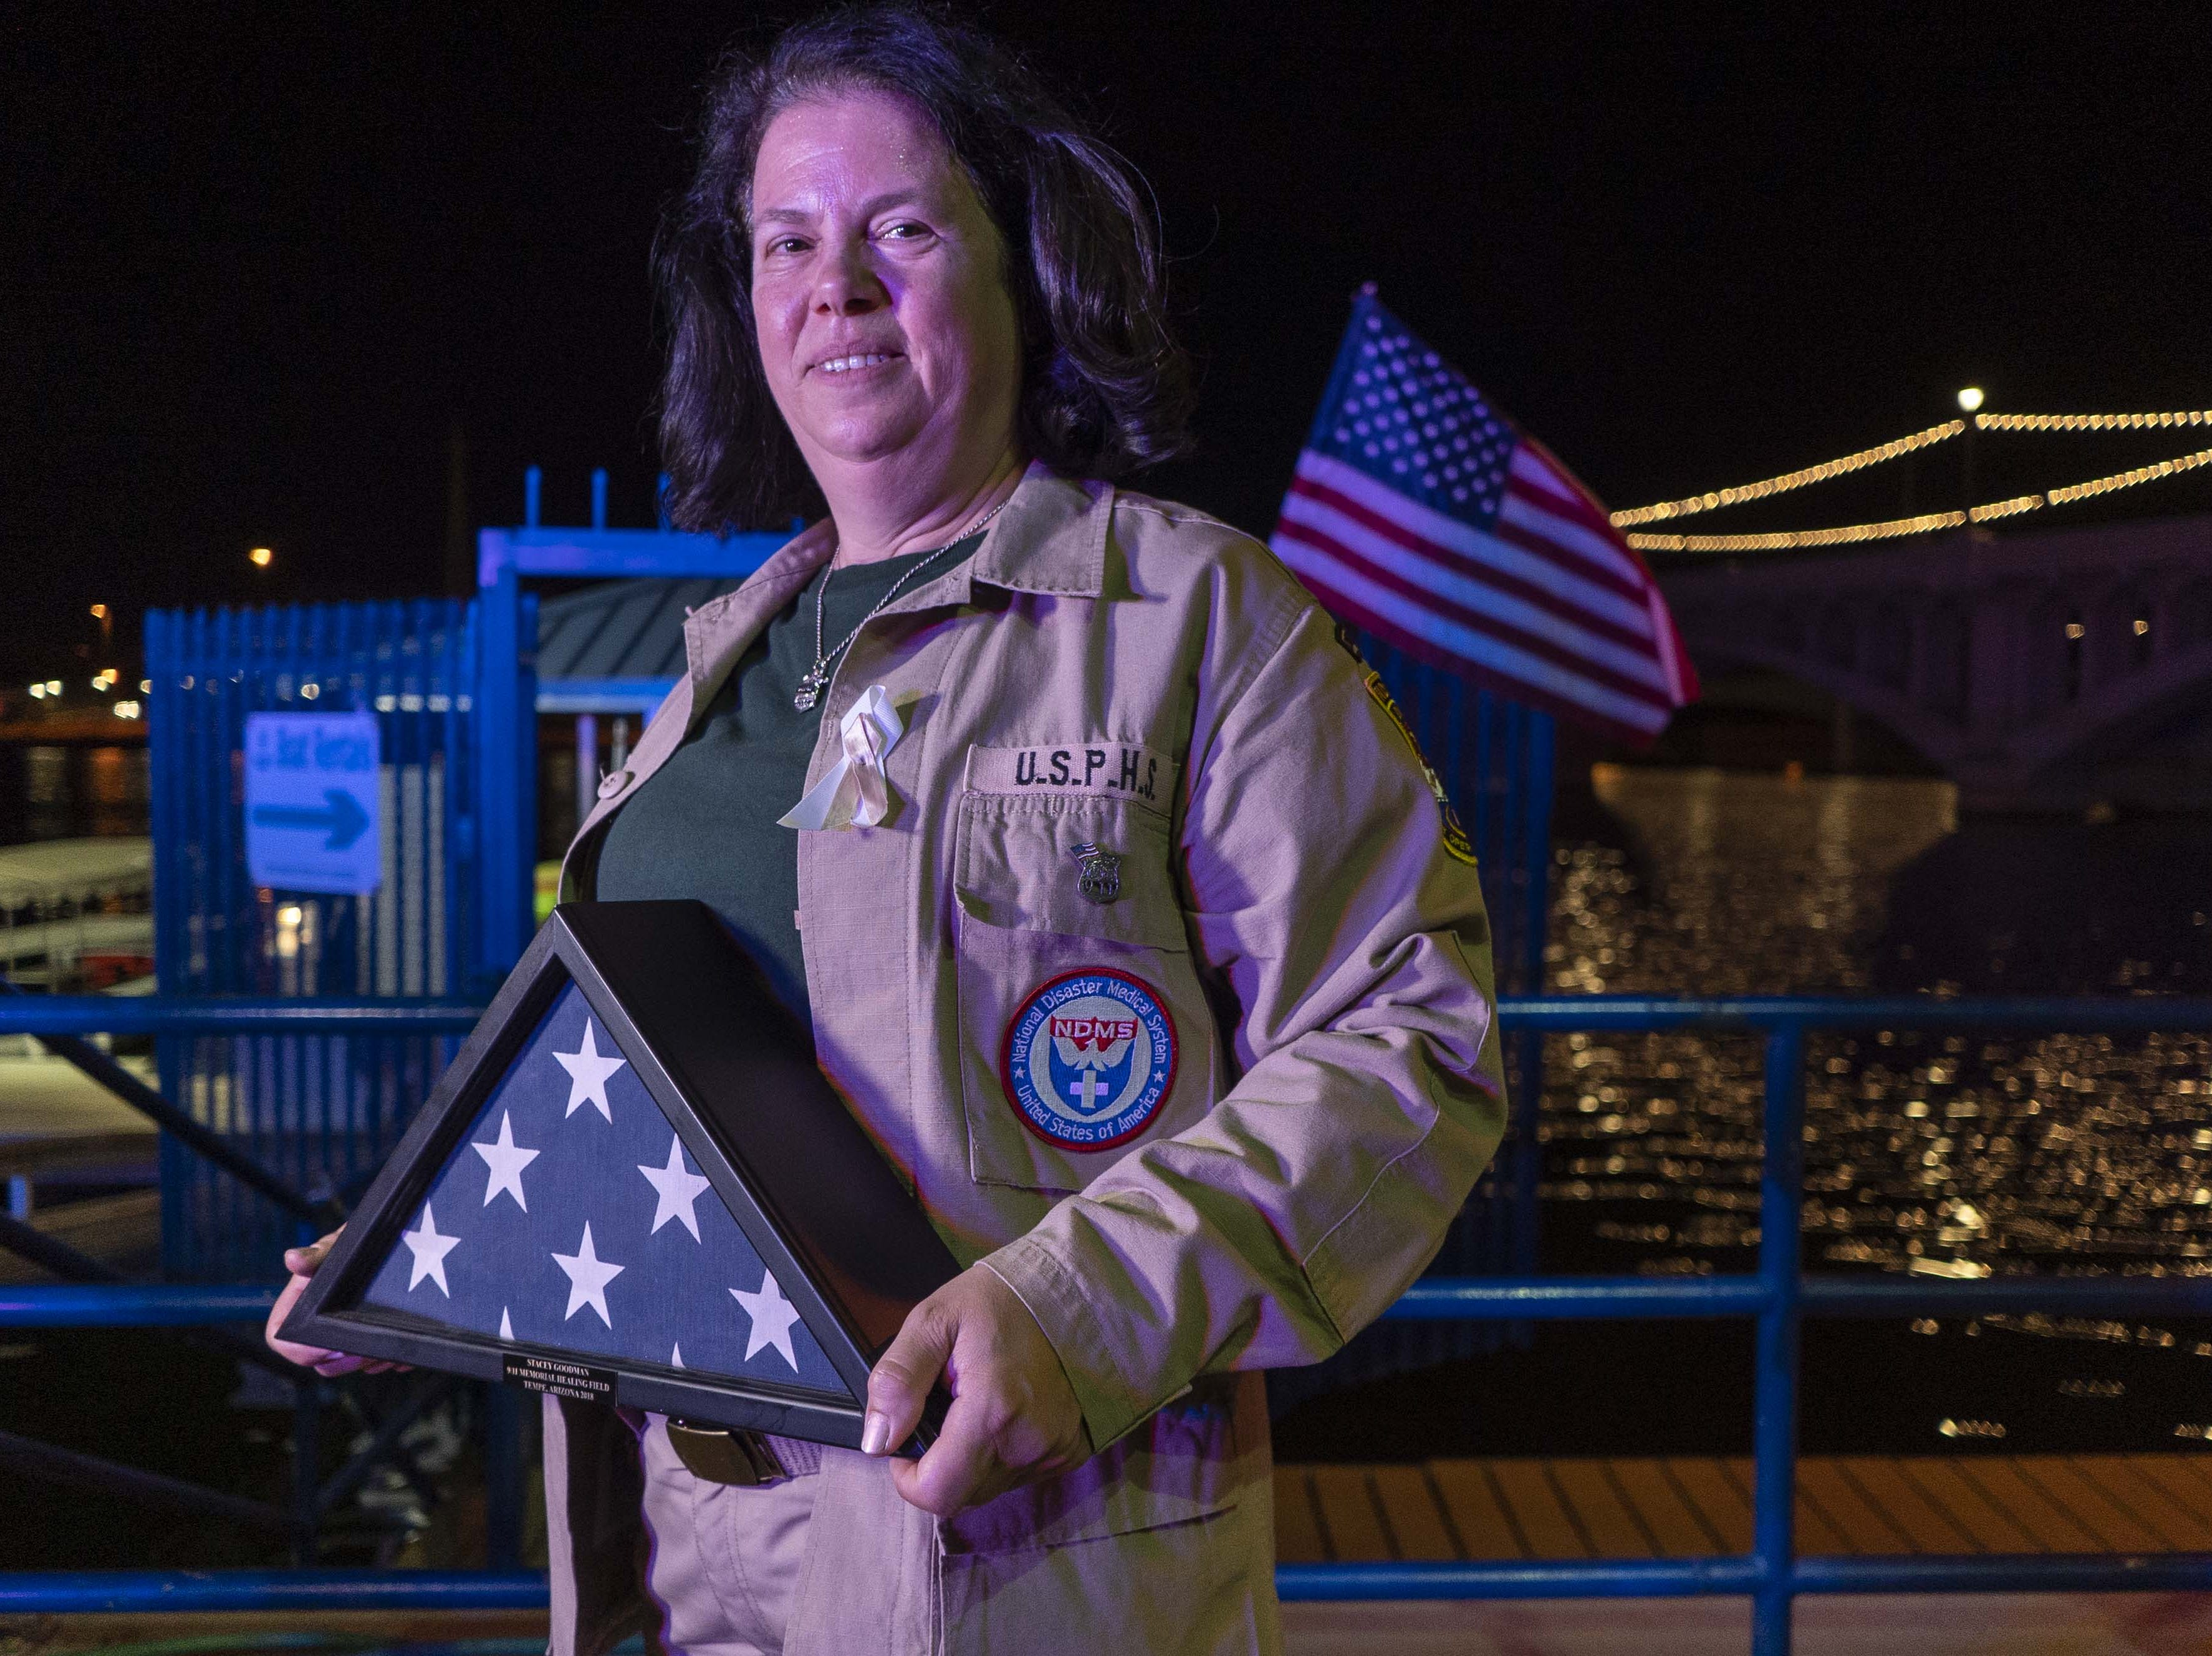 Stacey Goodman, a retired Suffolk County Police Department detective, volunteered at Ground Zero in the days after 9/11 and spoke during the ceremony at the Healing Field at Tempe Beach Park on Sept. 11, 2018. Goodman worked in the makeshift 9/11 morgue for 23 days. She now lives in the Valley.